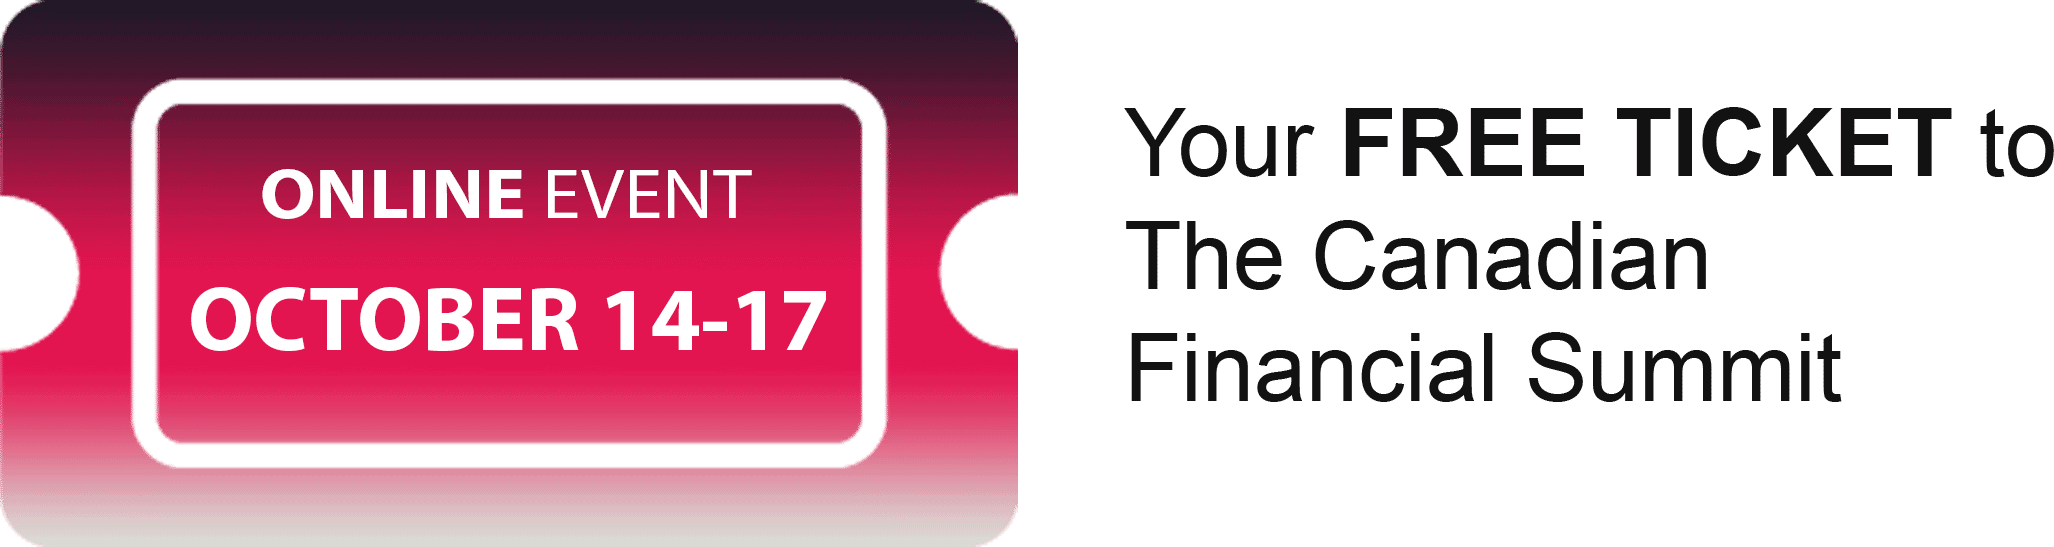 Your FREE TICKET To The Canadian Financial Summit